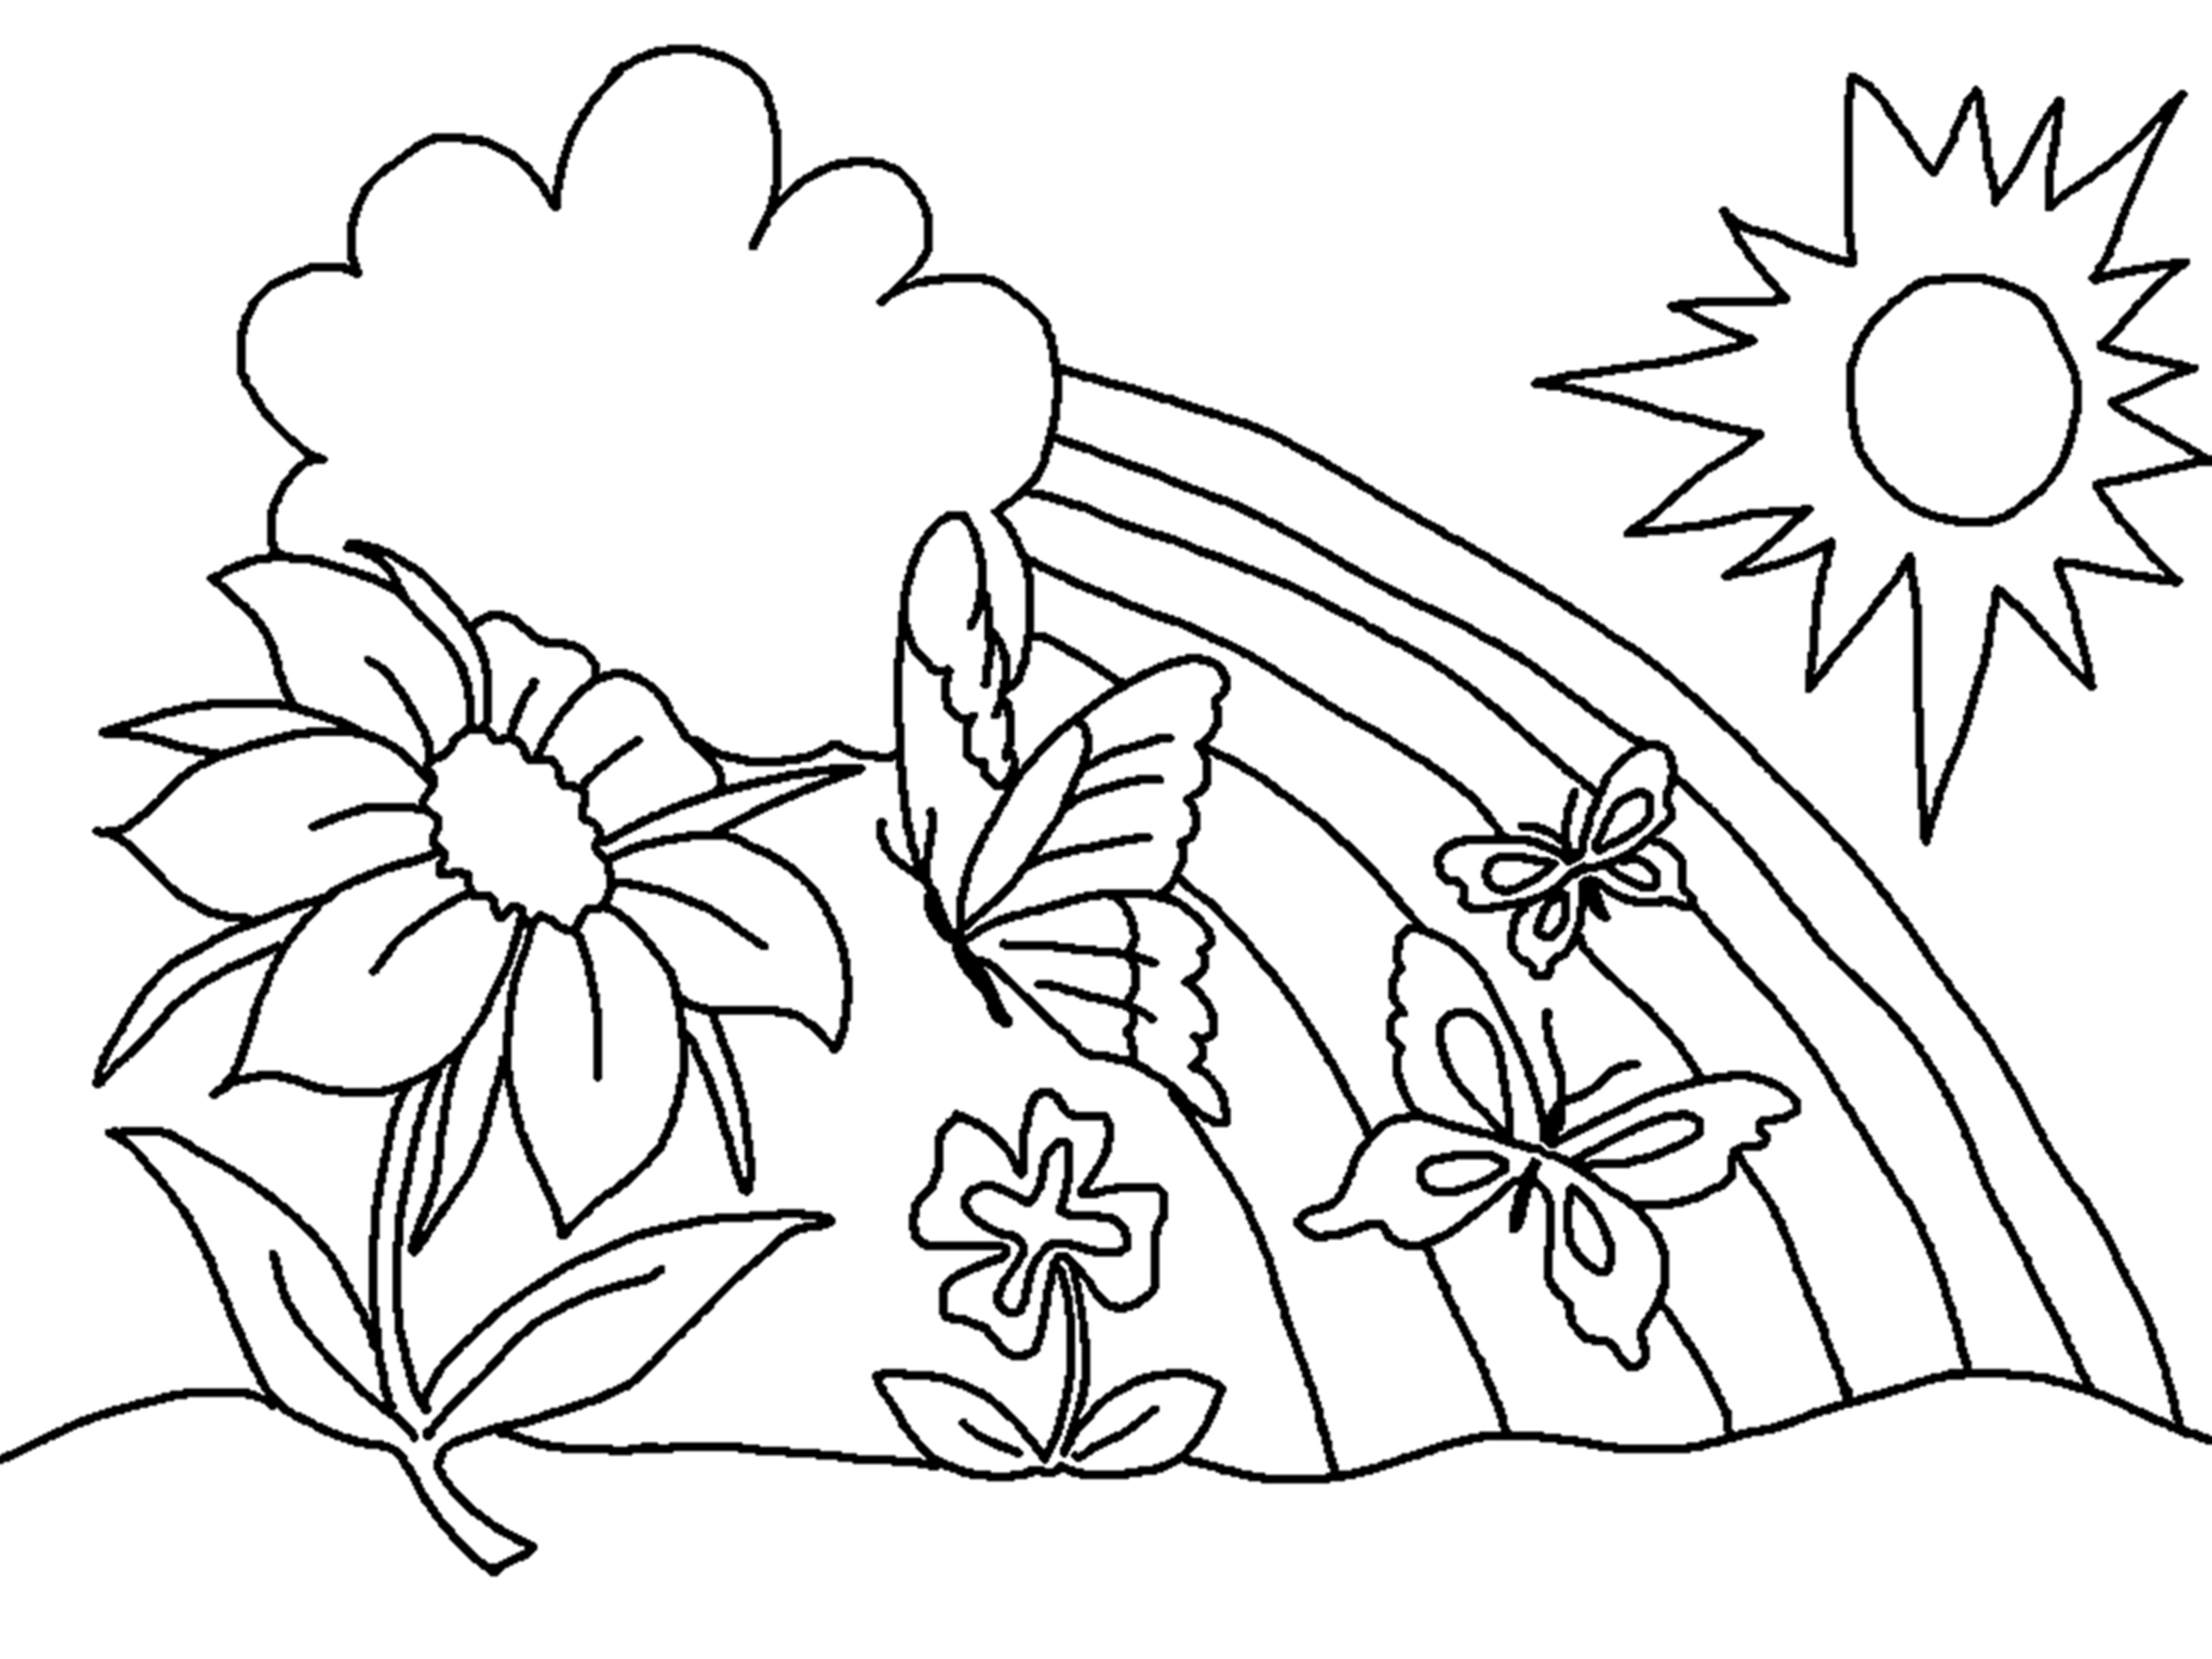 image about Printable Flowers Coloring Pages identify Cost-free Printable Flower Coloring Webpages For Little ones - Least complicated